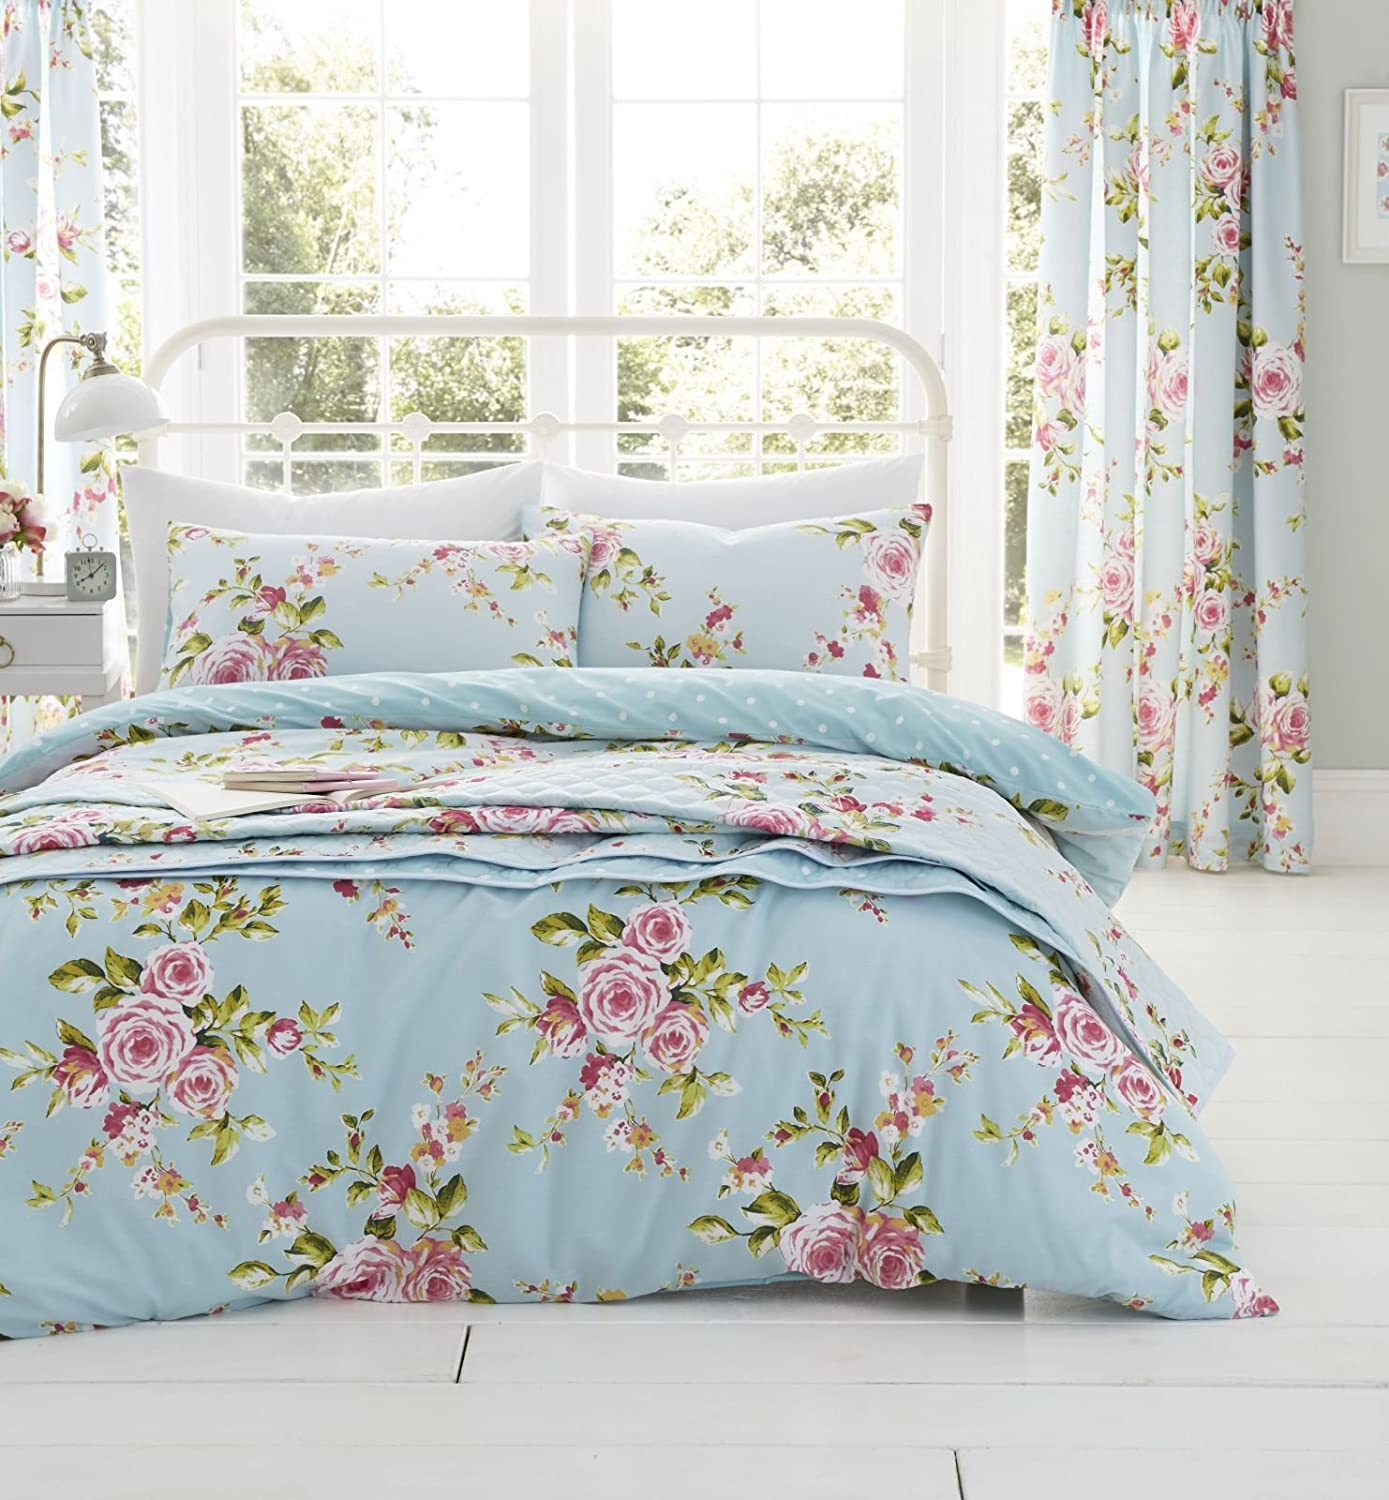 Catherine Lansfield Canterbury Double Duvet Set, Multi by Catherine Lansfield BDB2 8239 WDHQ